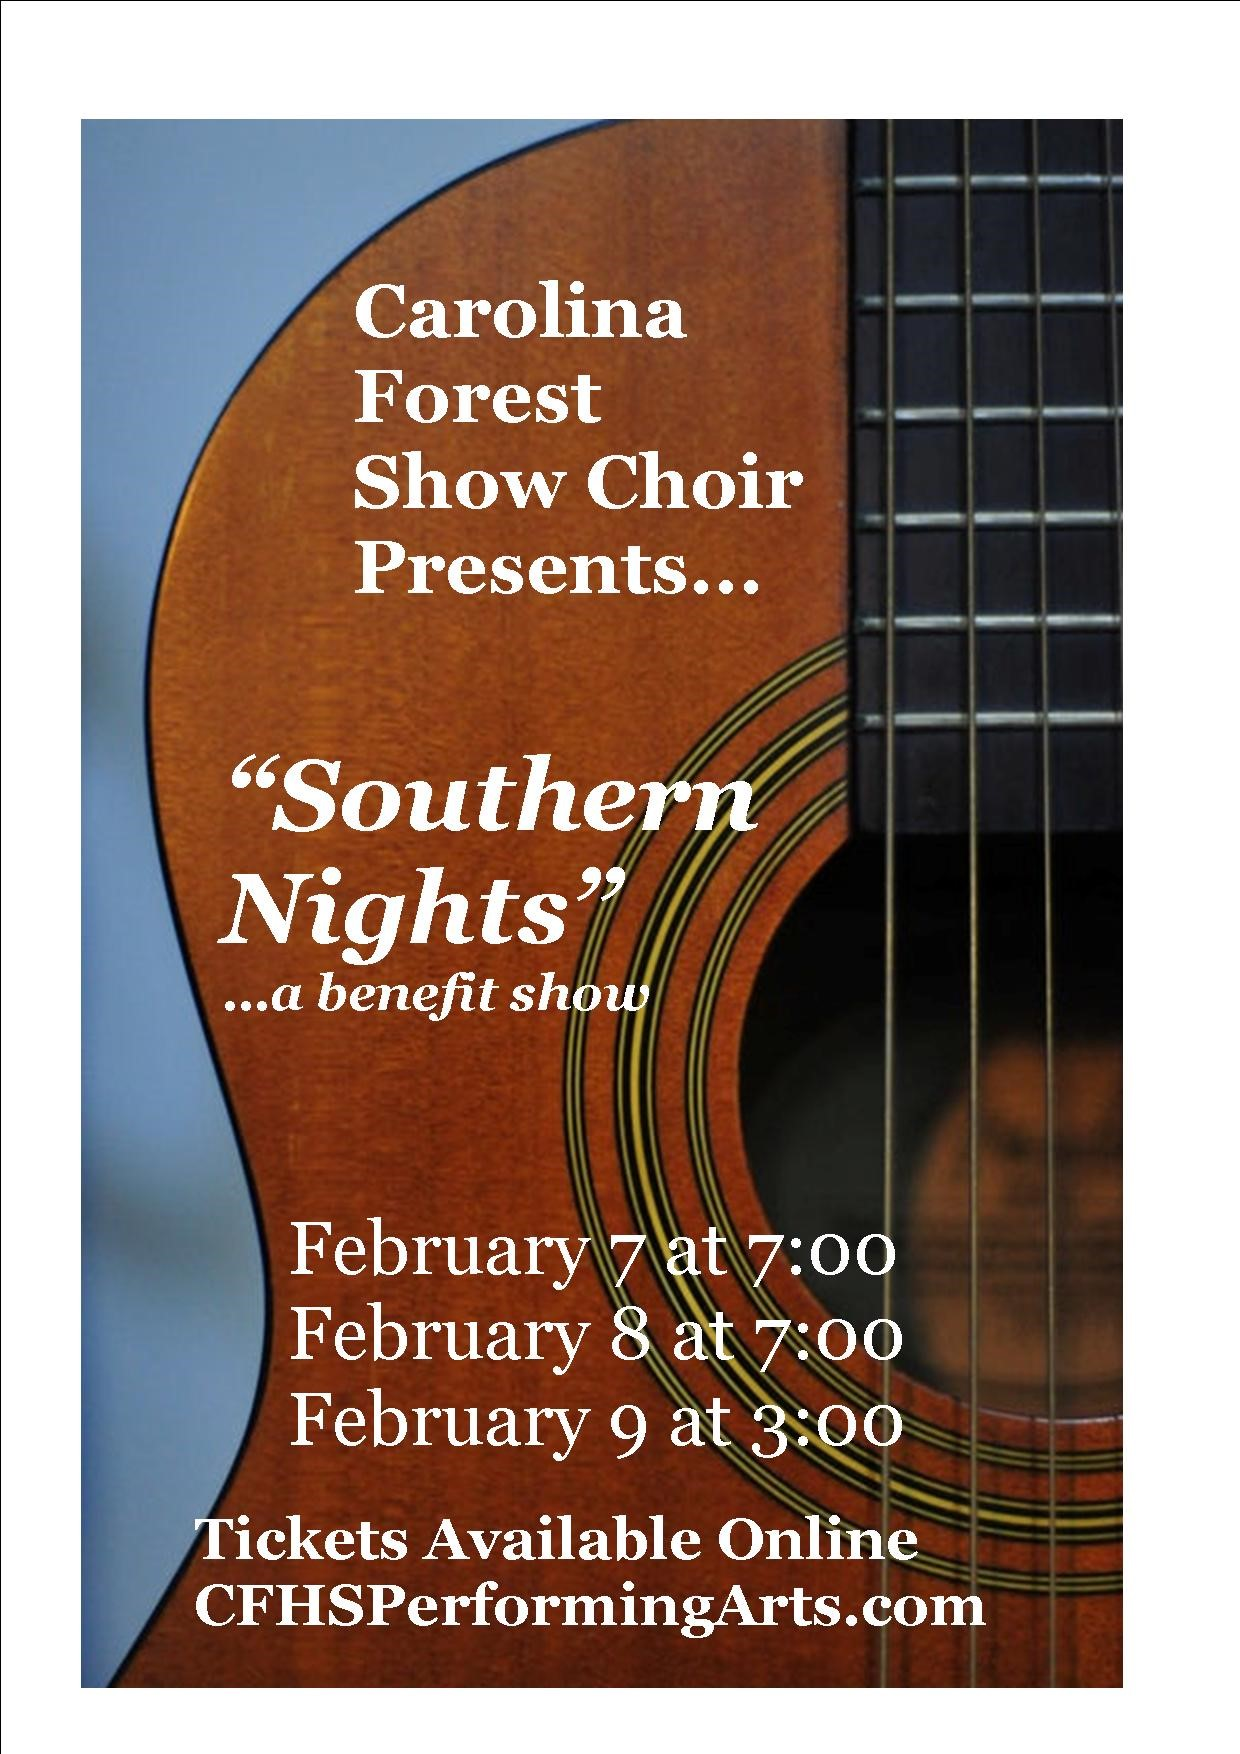 Southern Nights Showcase Benefit Show on Feb 09, 15:00@Carolina Forest HS - Pick a seat, Buy tickets and Get information on Carolina Forest High School Performing Arts cfhsshowtickets.com